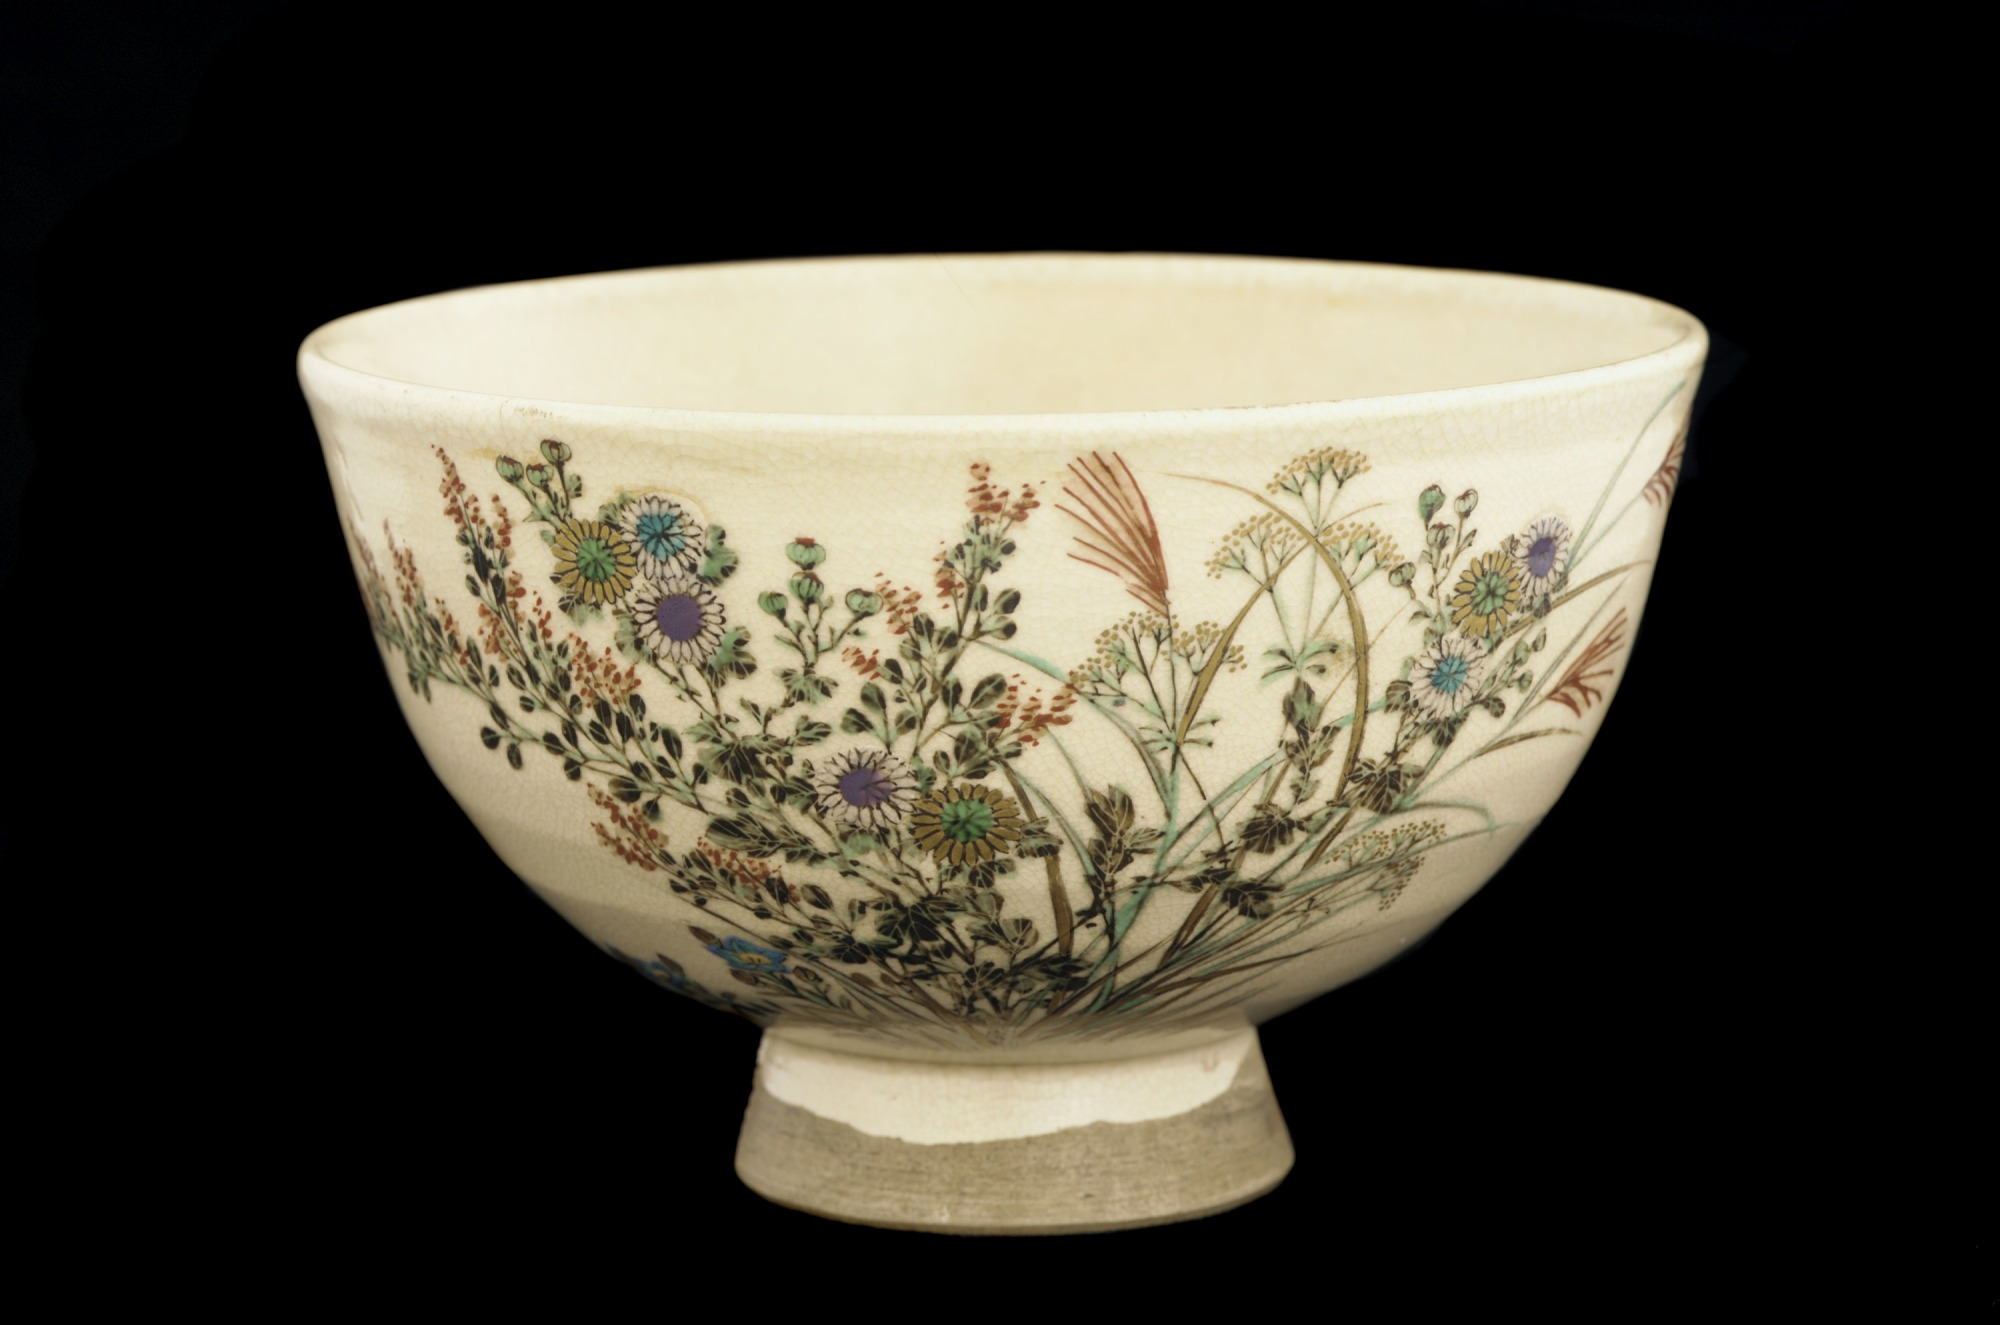 profile: Tea bowl with design of autumn grasses